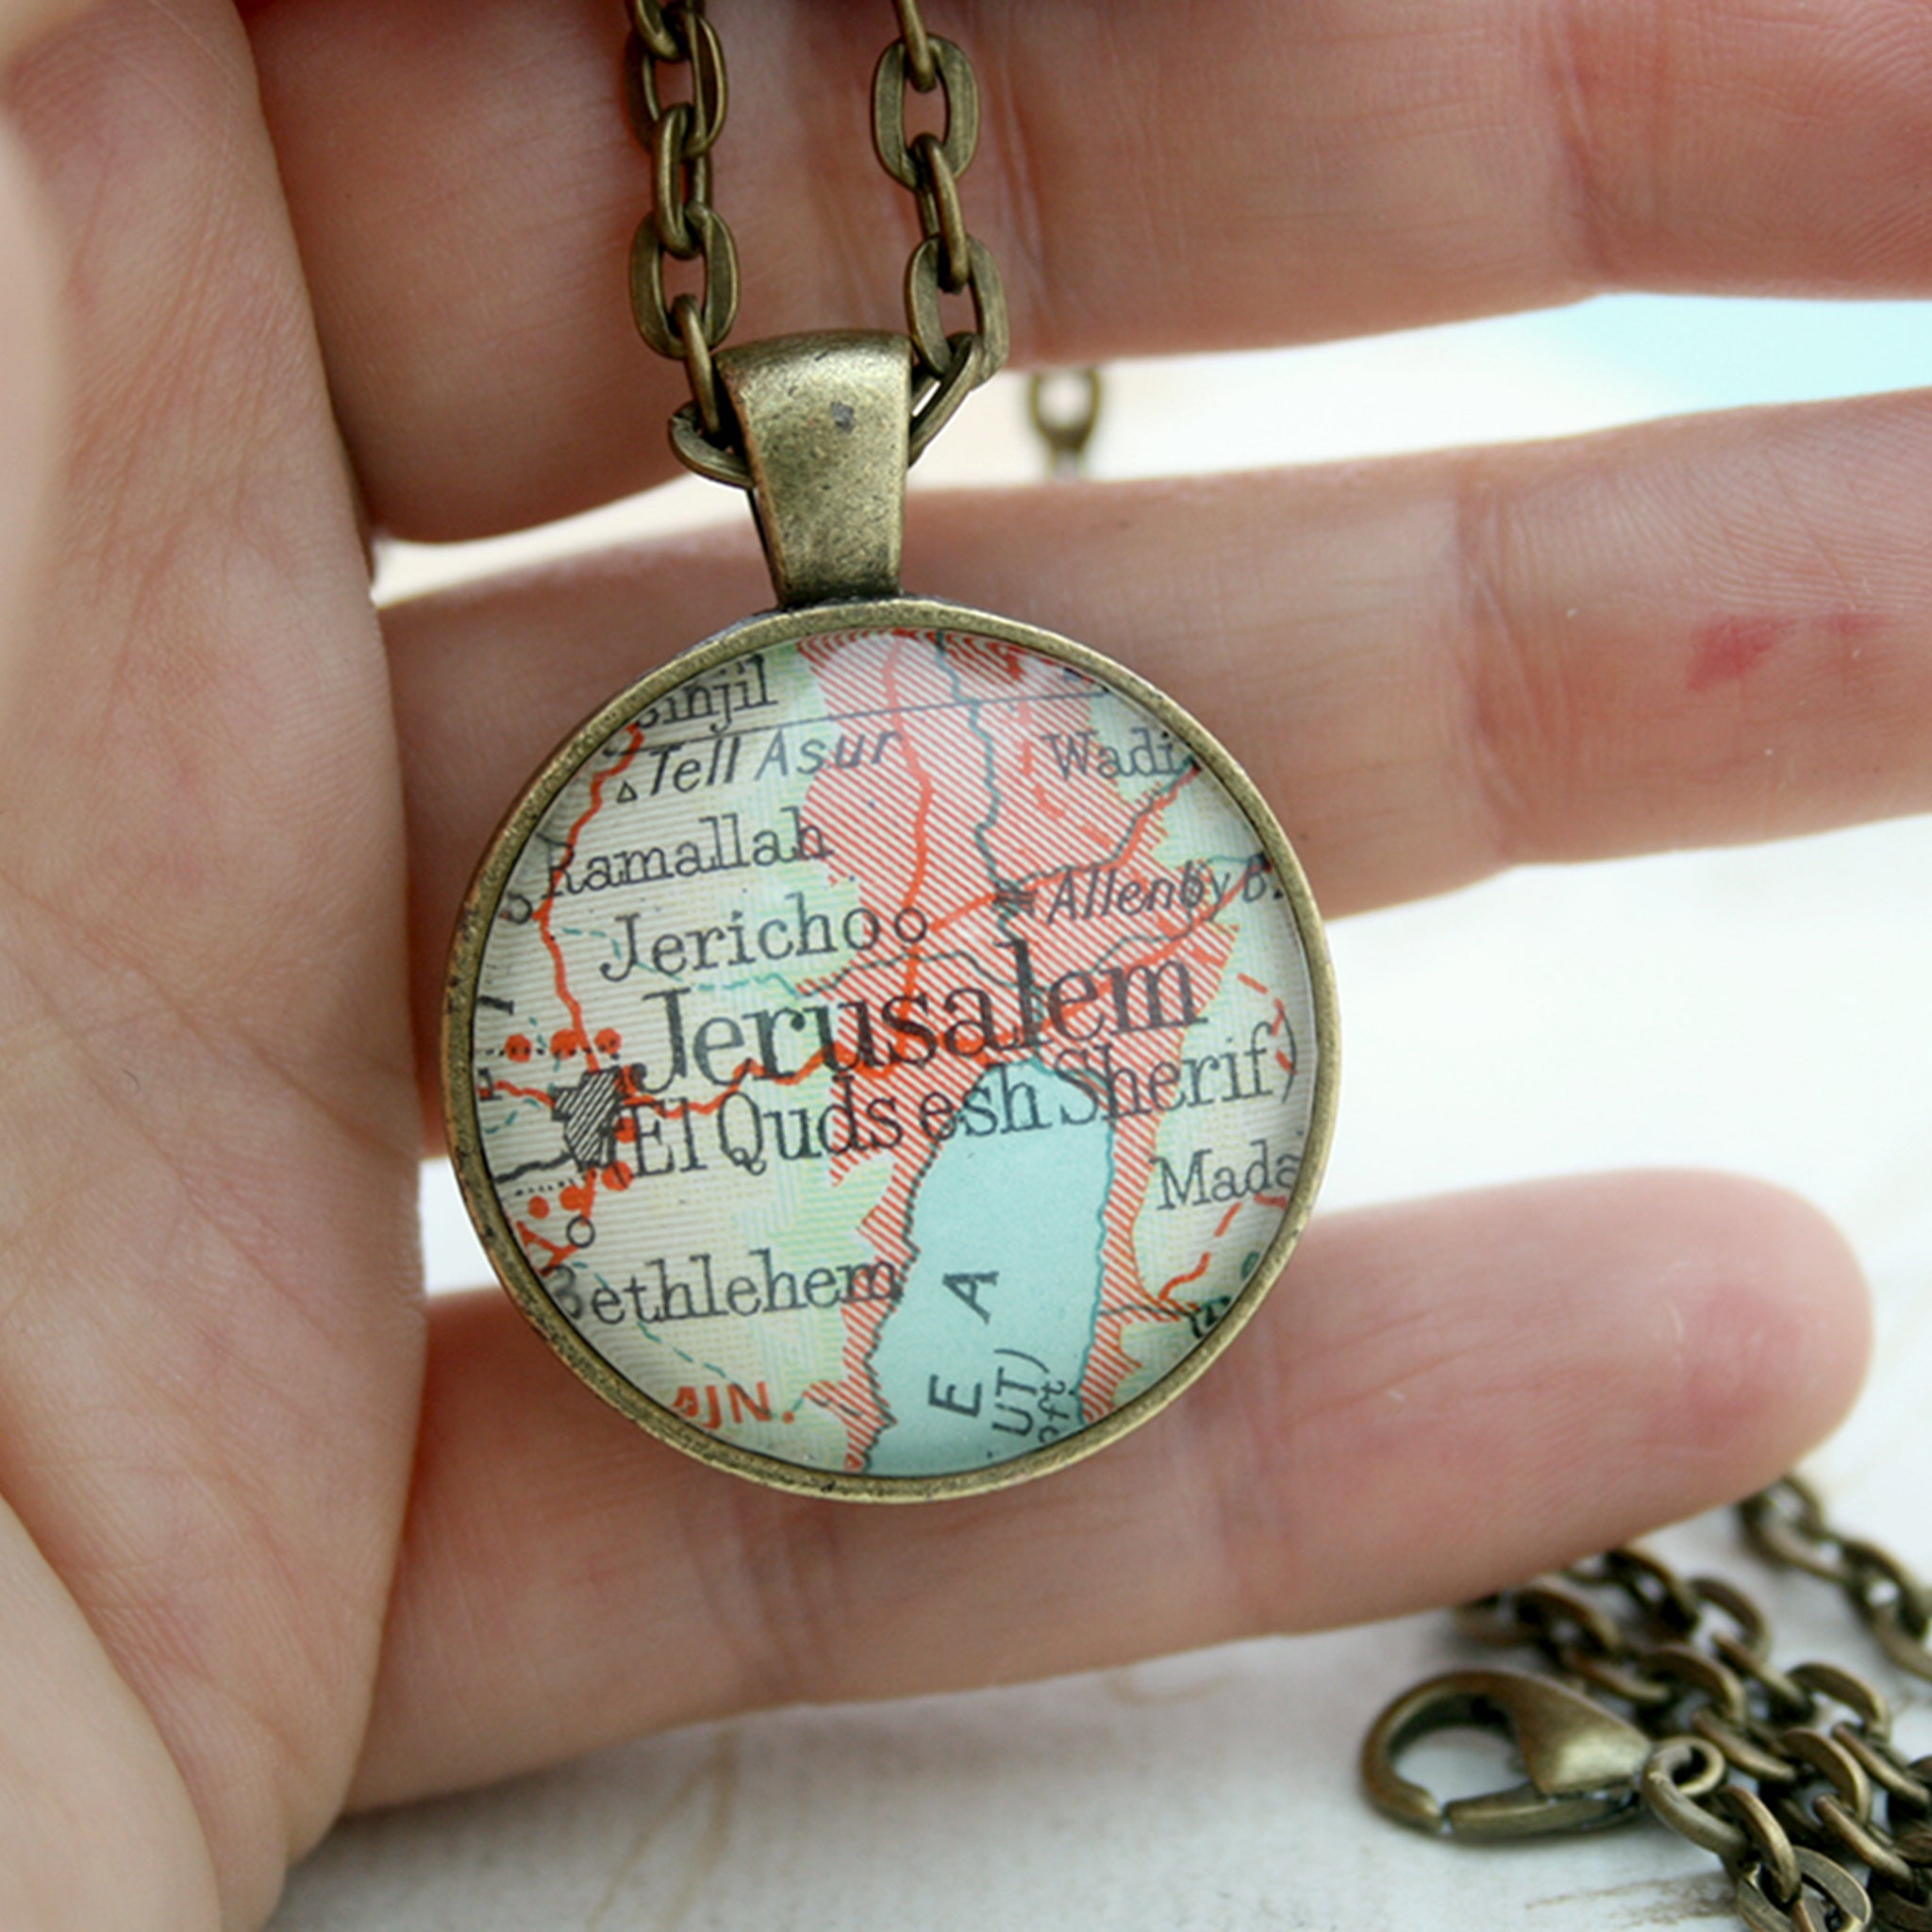 Hold in hand Bronze double sided pendant necklace featuring map of Jerusalem